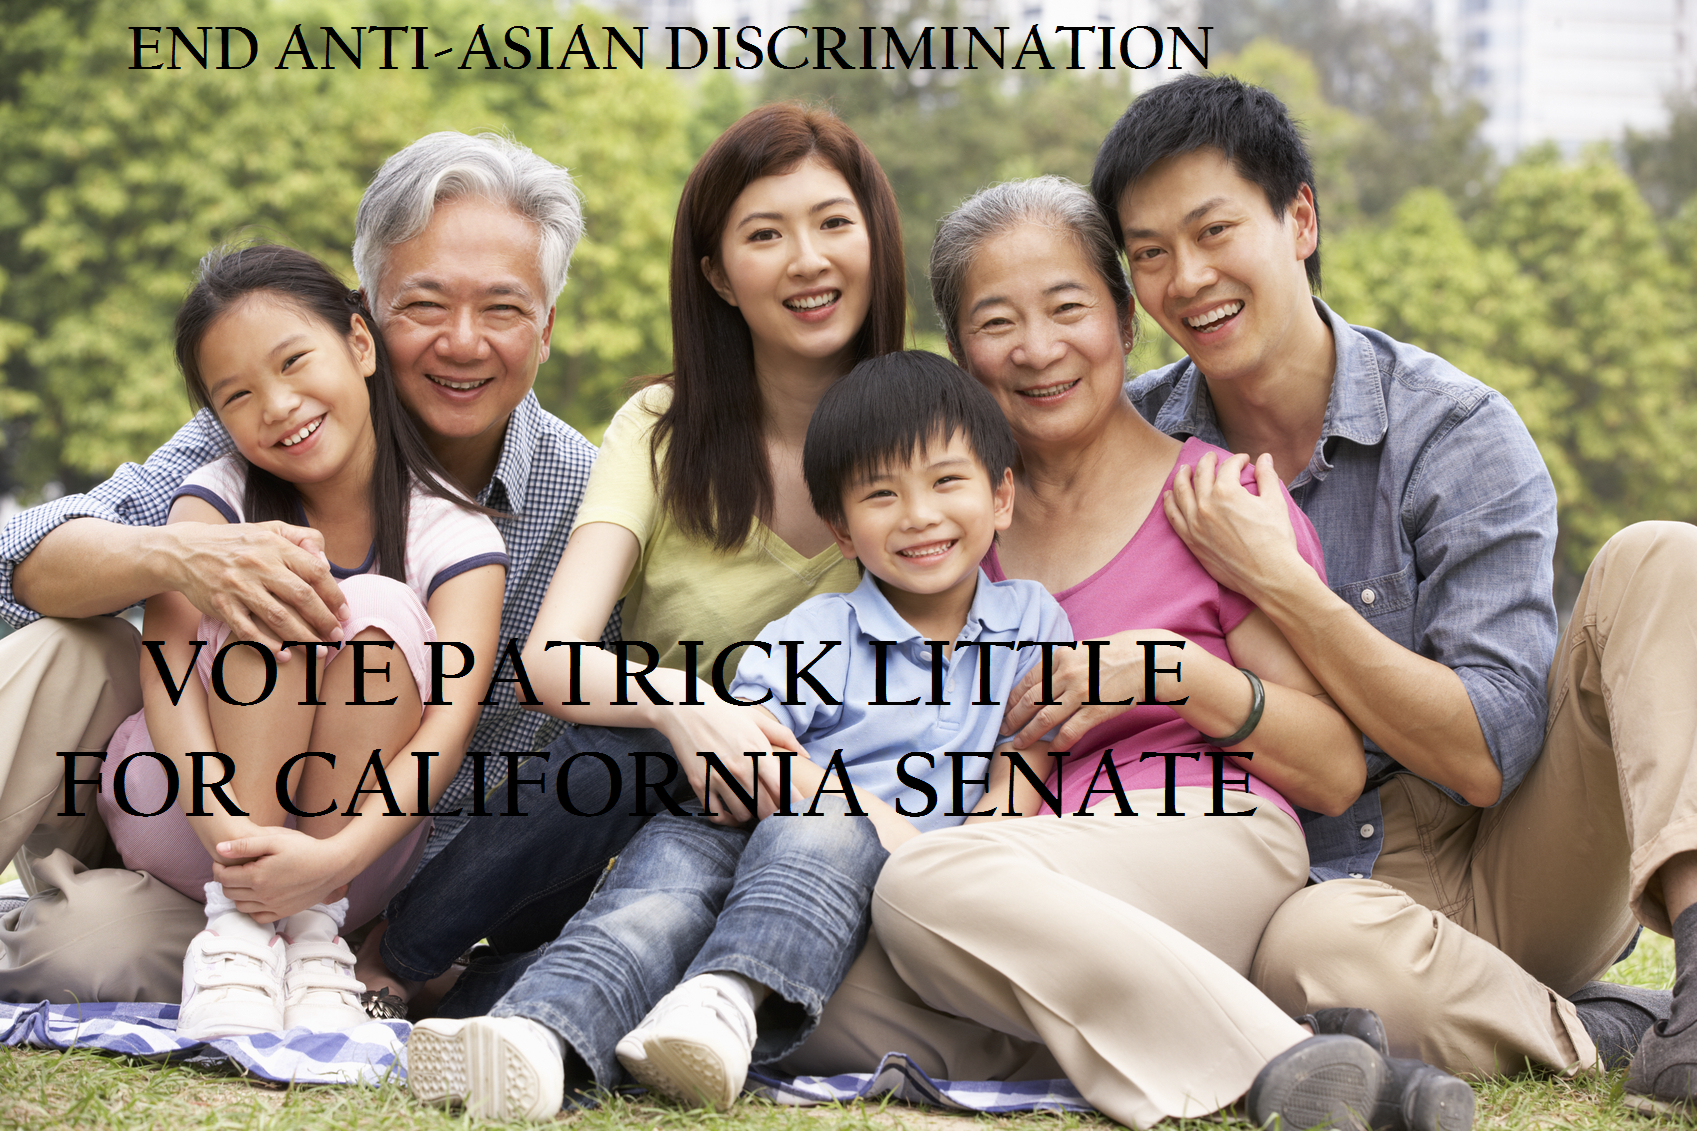 end anti-asian discrimination 3